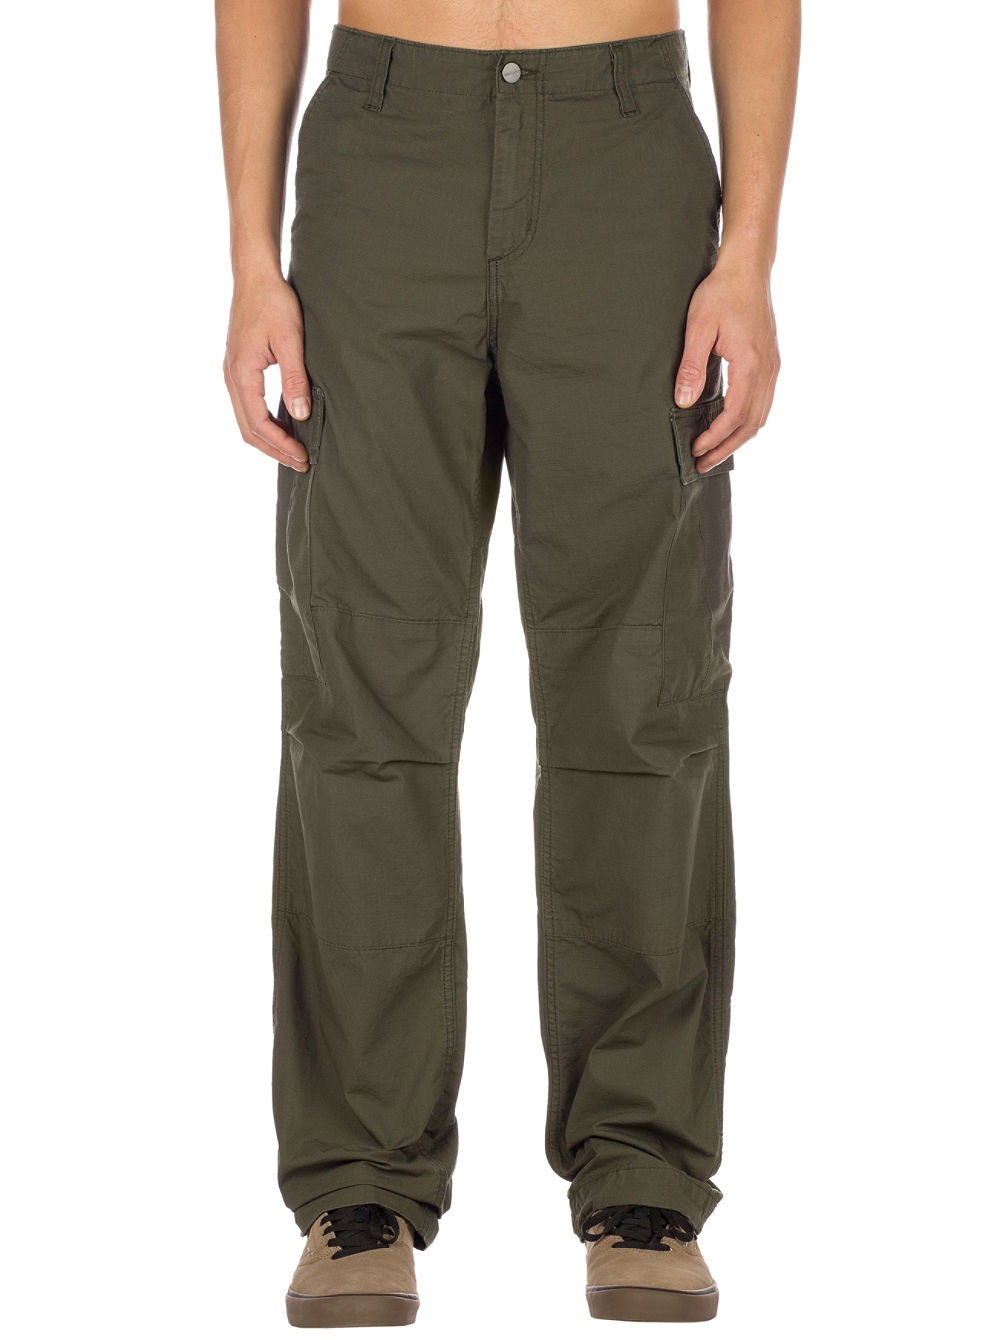 842a0e880f Buy Carhartt WIP Regular Cargo Pants online at Blue Tomato